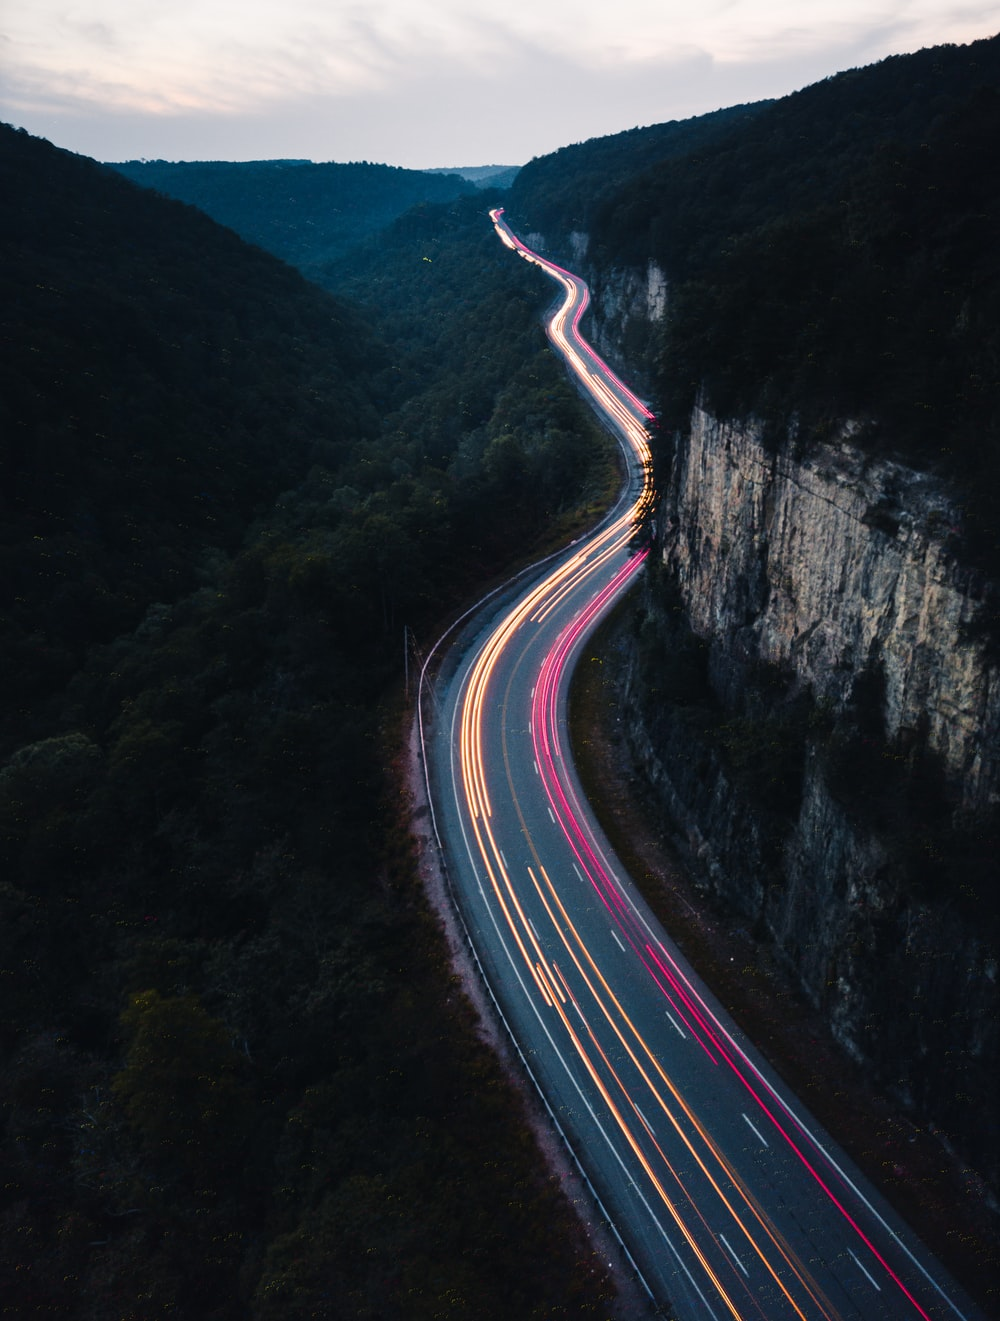 panning photo of lighted road